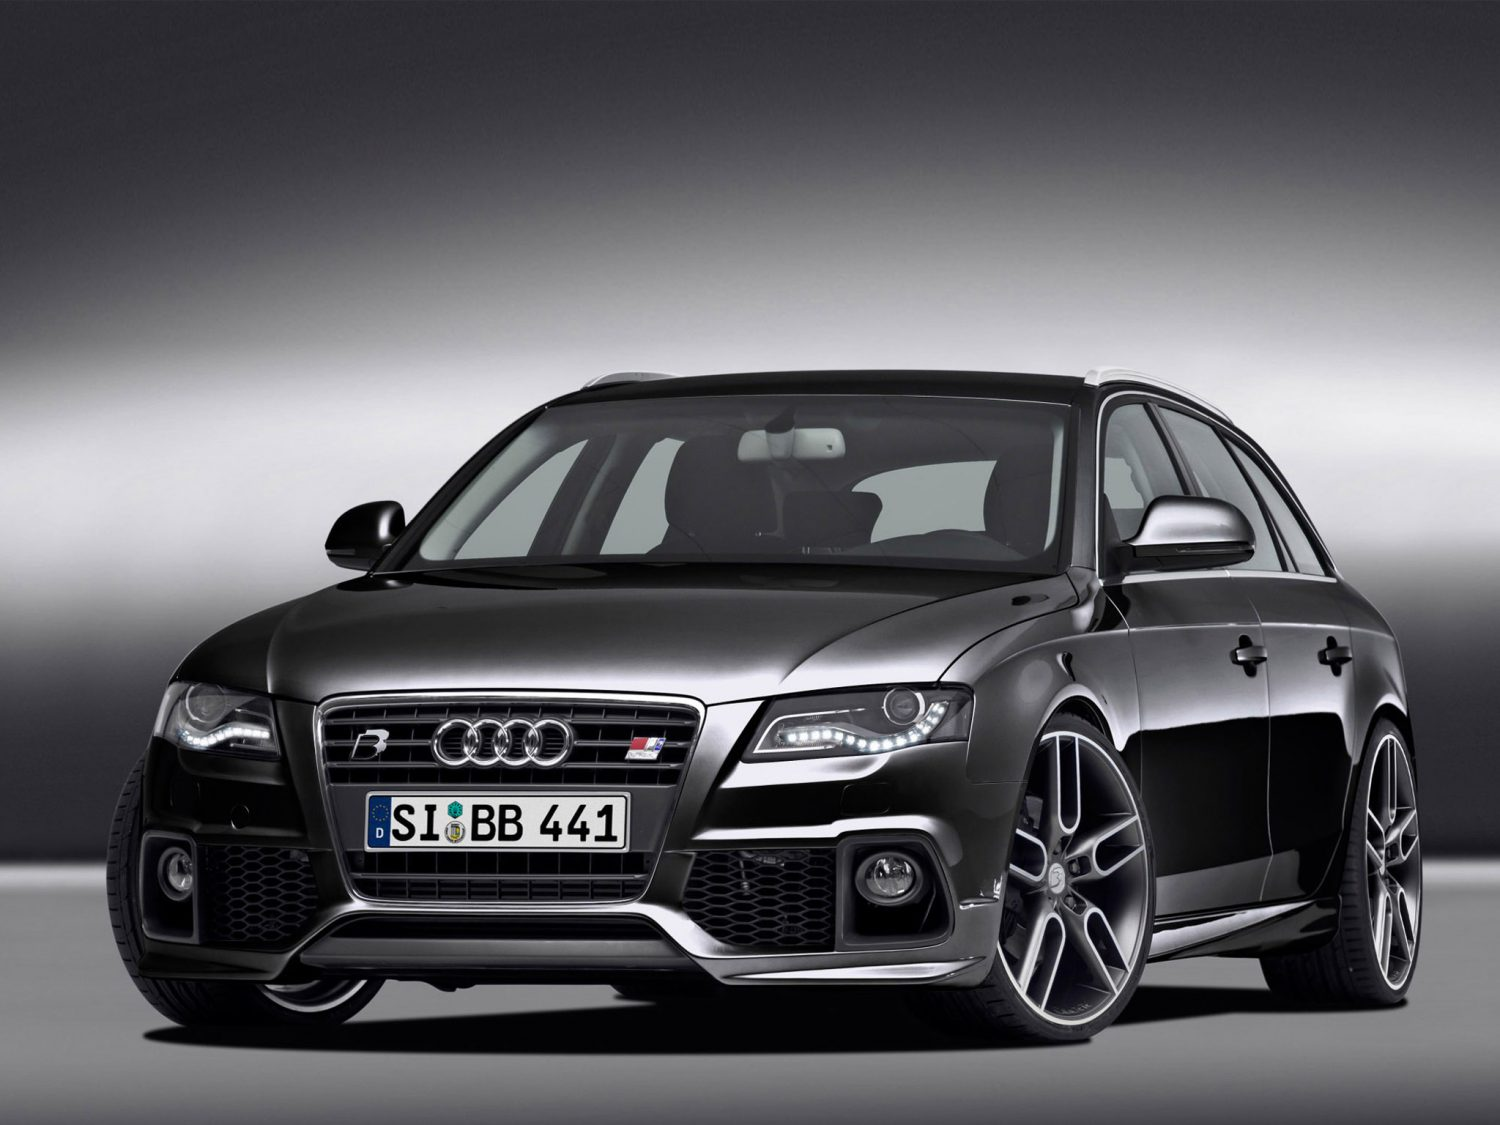 2011 Audi A4 Offers a Driving Experience Like No Other